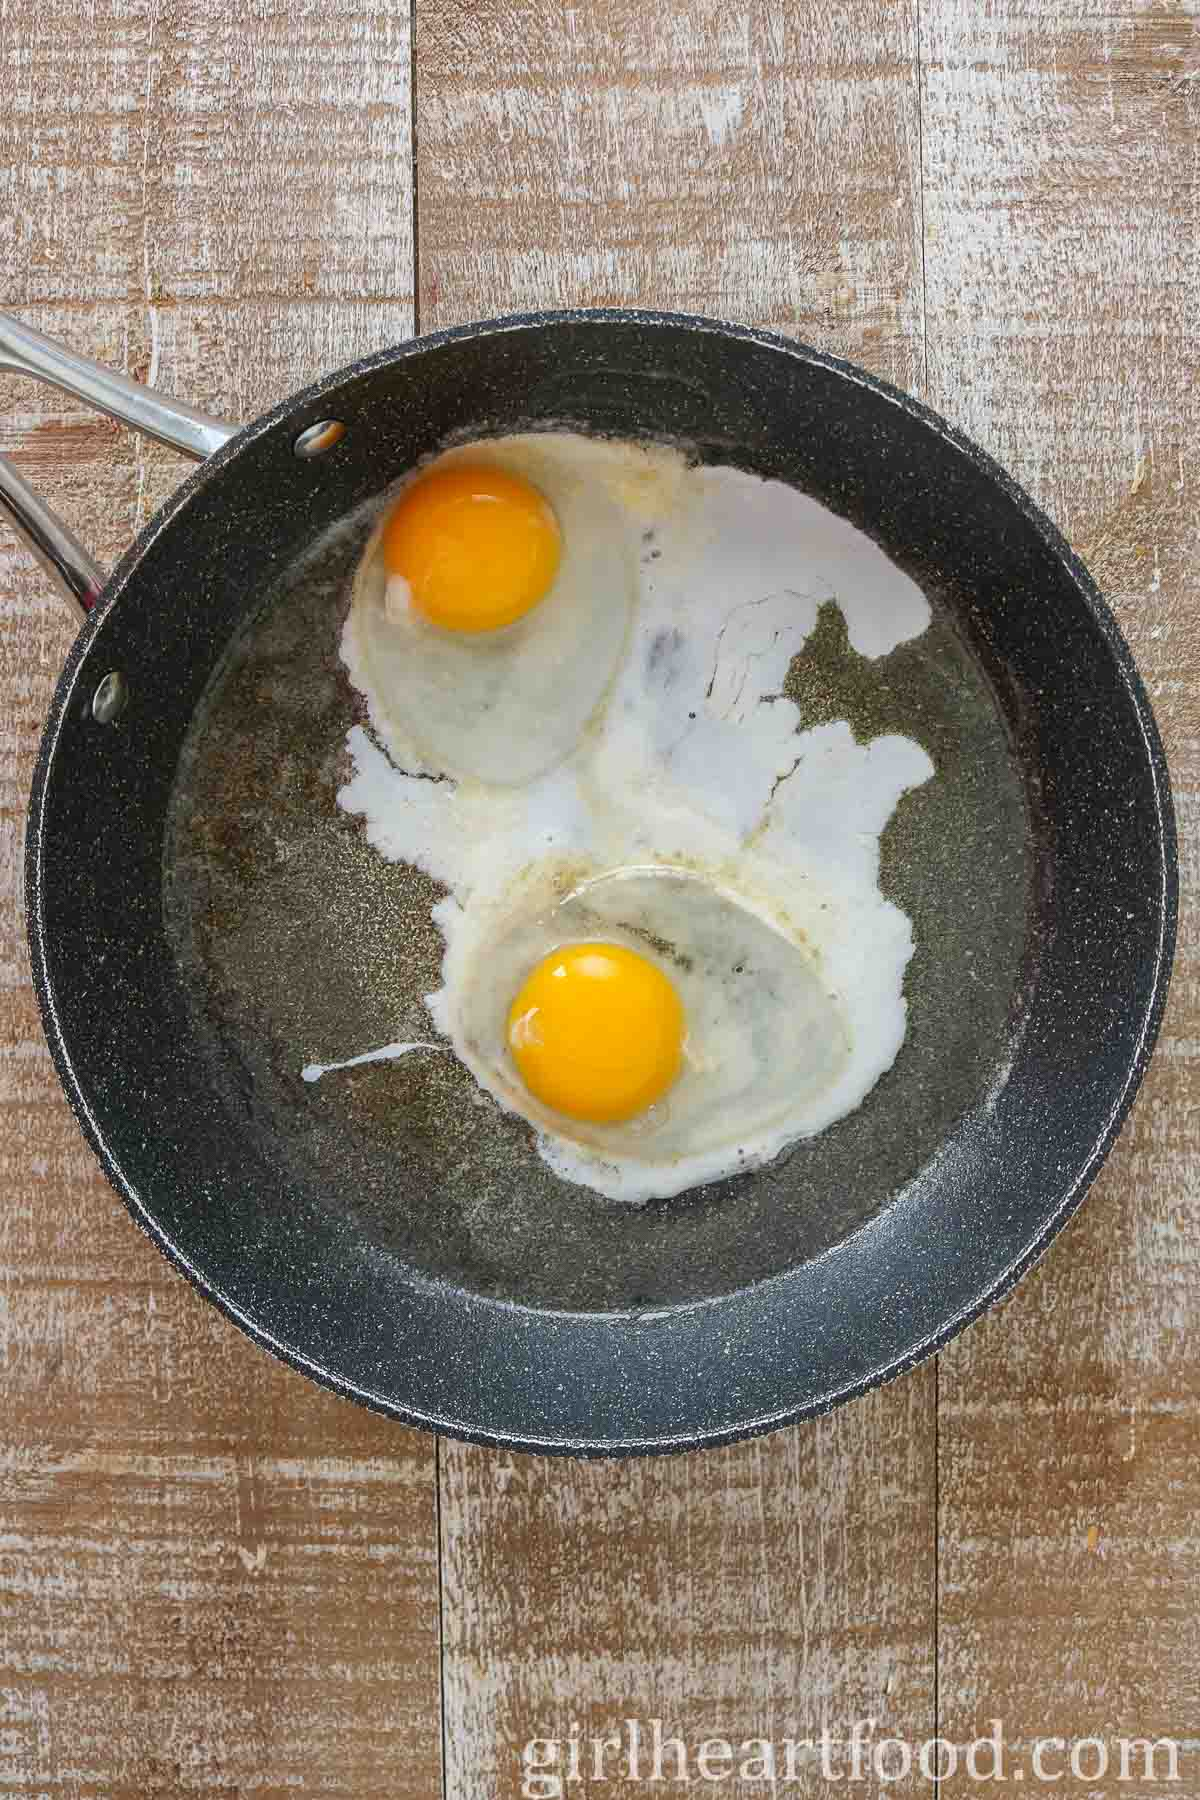 Two eggs in a non-stick pan.